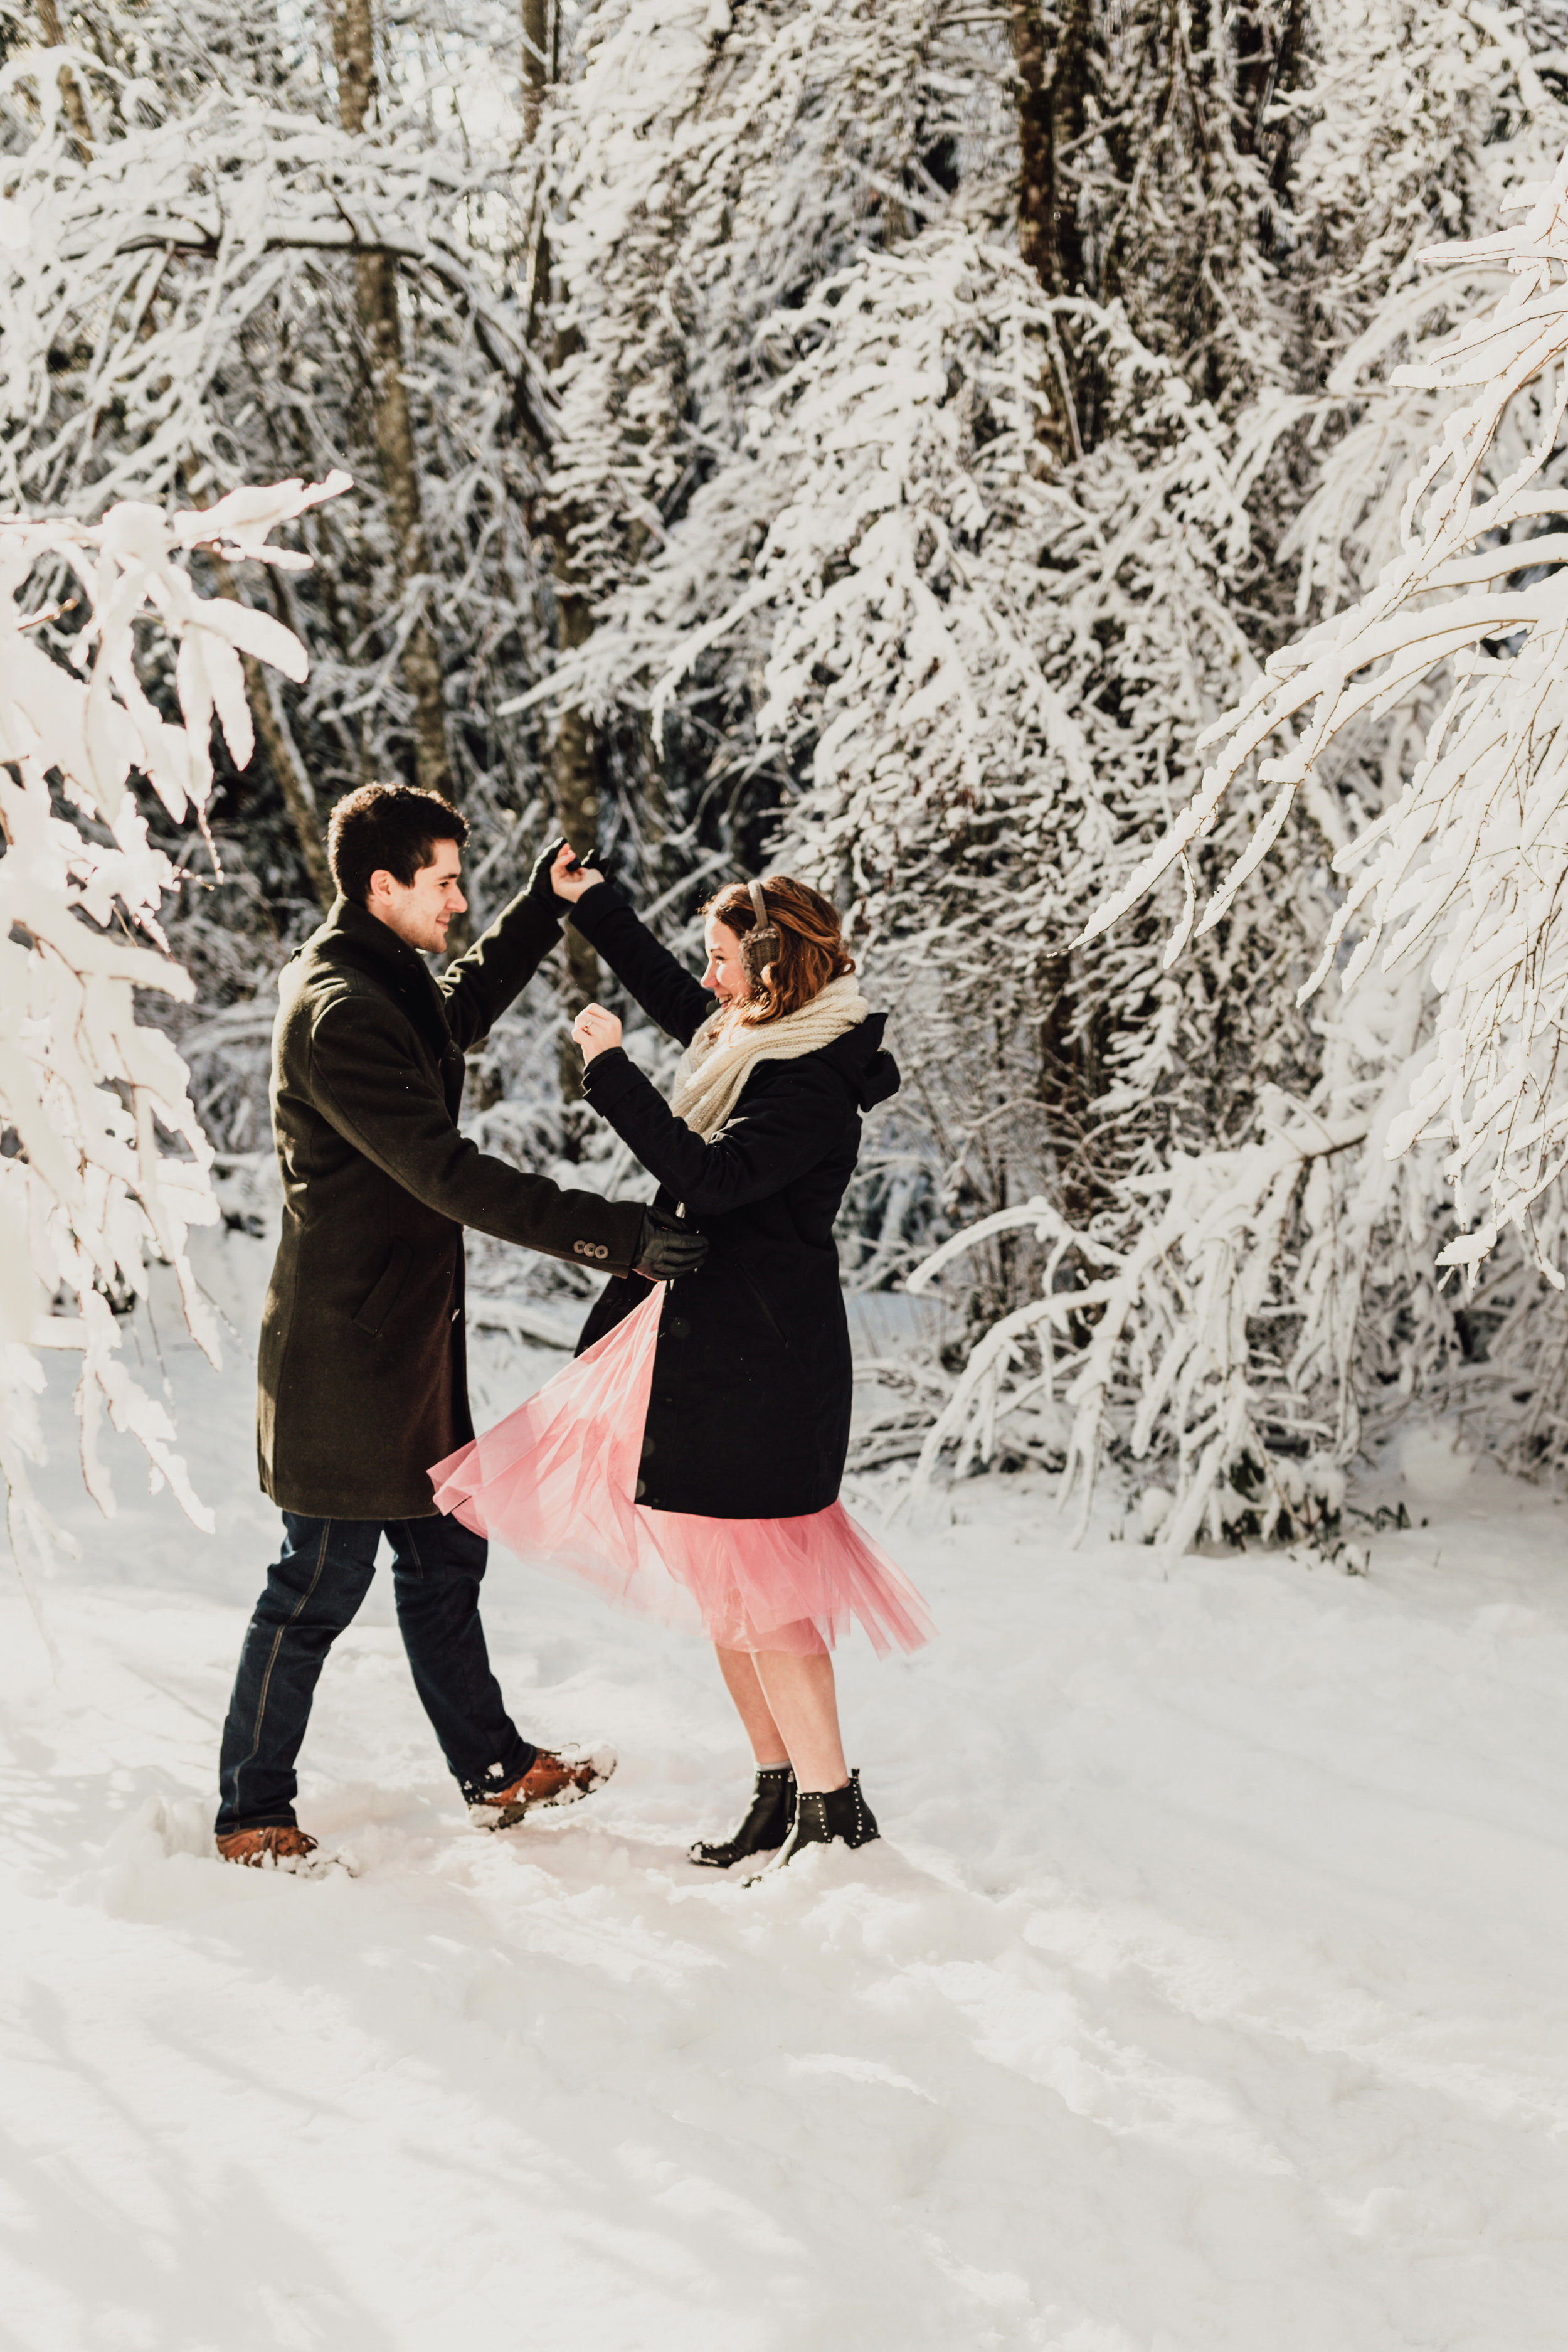 Snowy Engagement Photos - Gibsons Engagement Photos - Sunshine Coast Engagement Photos - Vancouver Wedding Photographer and Videographer - Jennifer Picard Photography104.JPG